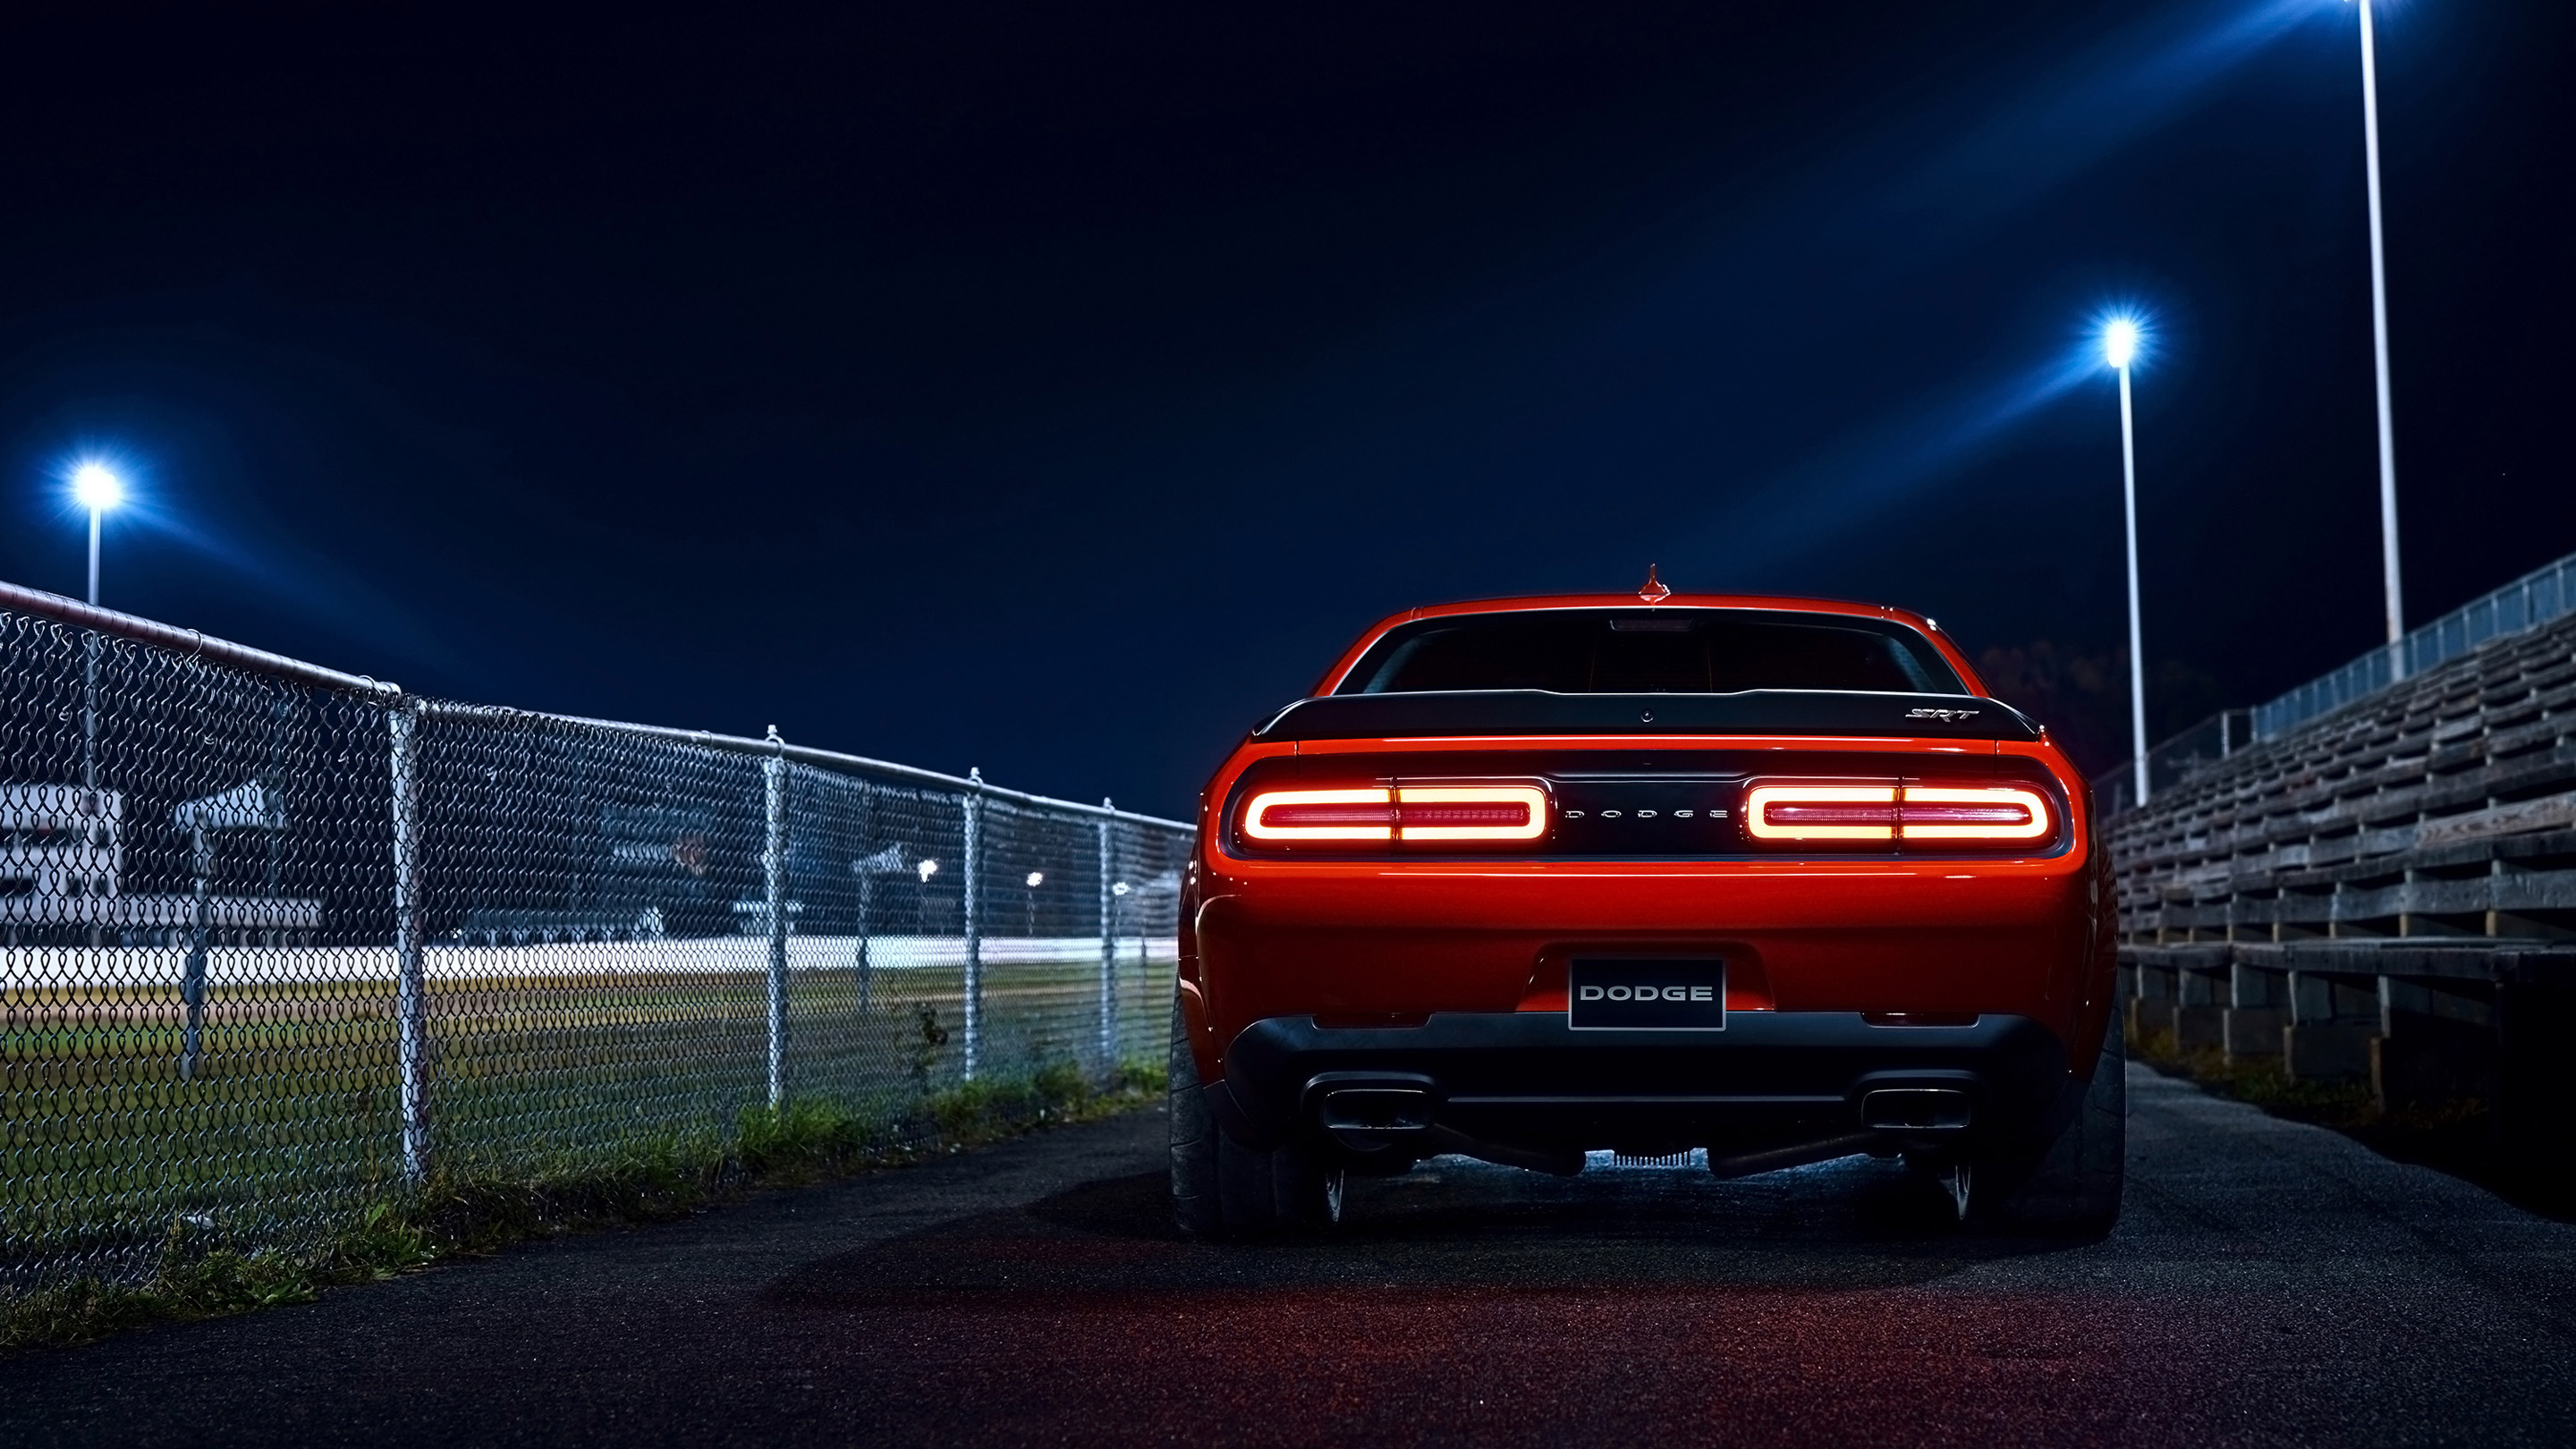 2018 dodge challenger srt demon 6 wallpaper hd car wallpapers. Cars Review. Best American Auto & Cars Review